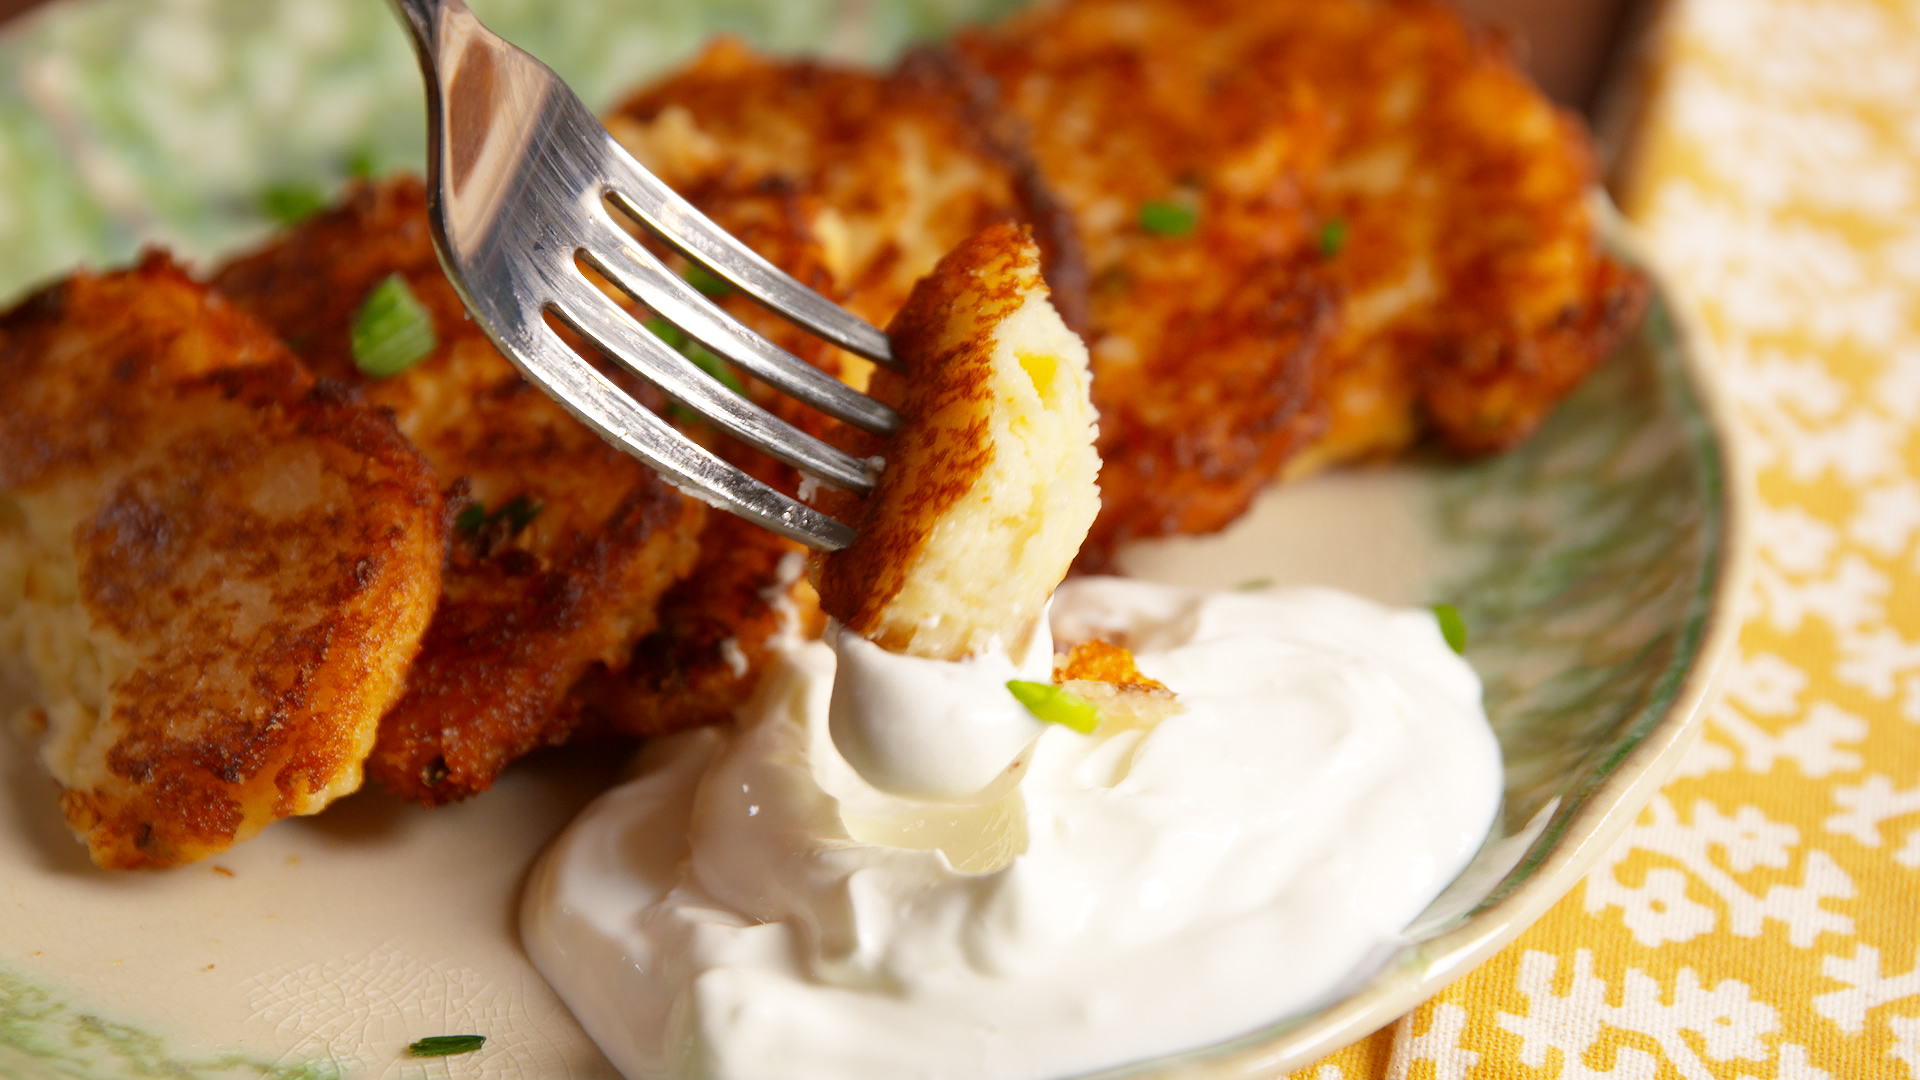 Loaded Fried Mashed Potatoes Are The Best Way To Hack Your Leftovers